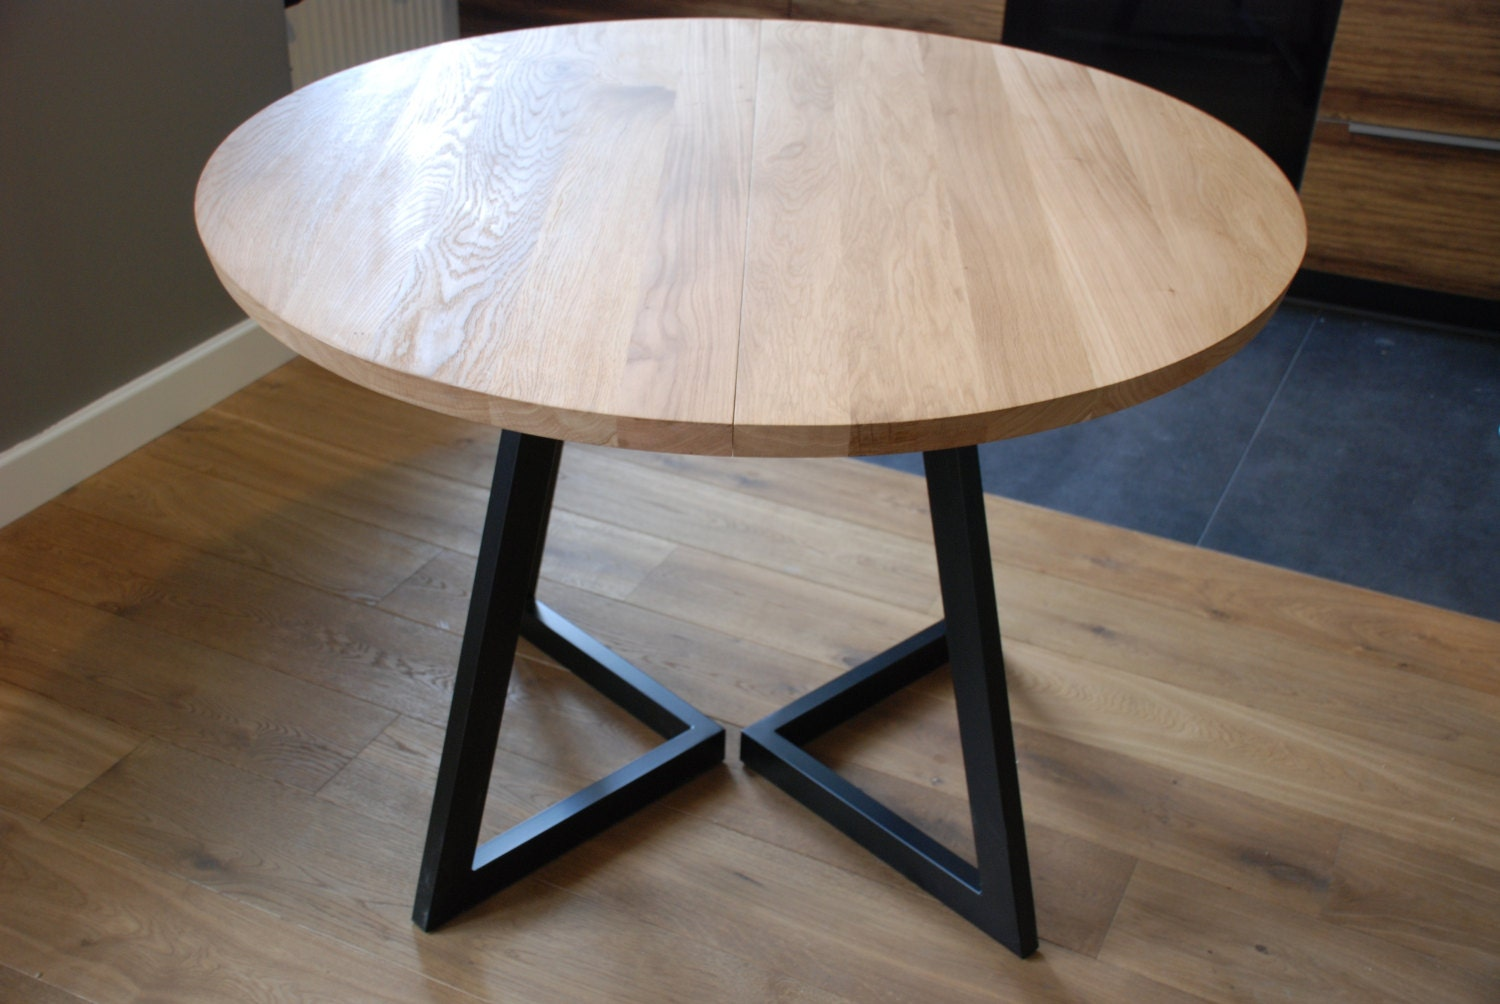 Bois et table ronde rallonges design moderne en acier for Table ronde design extensible